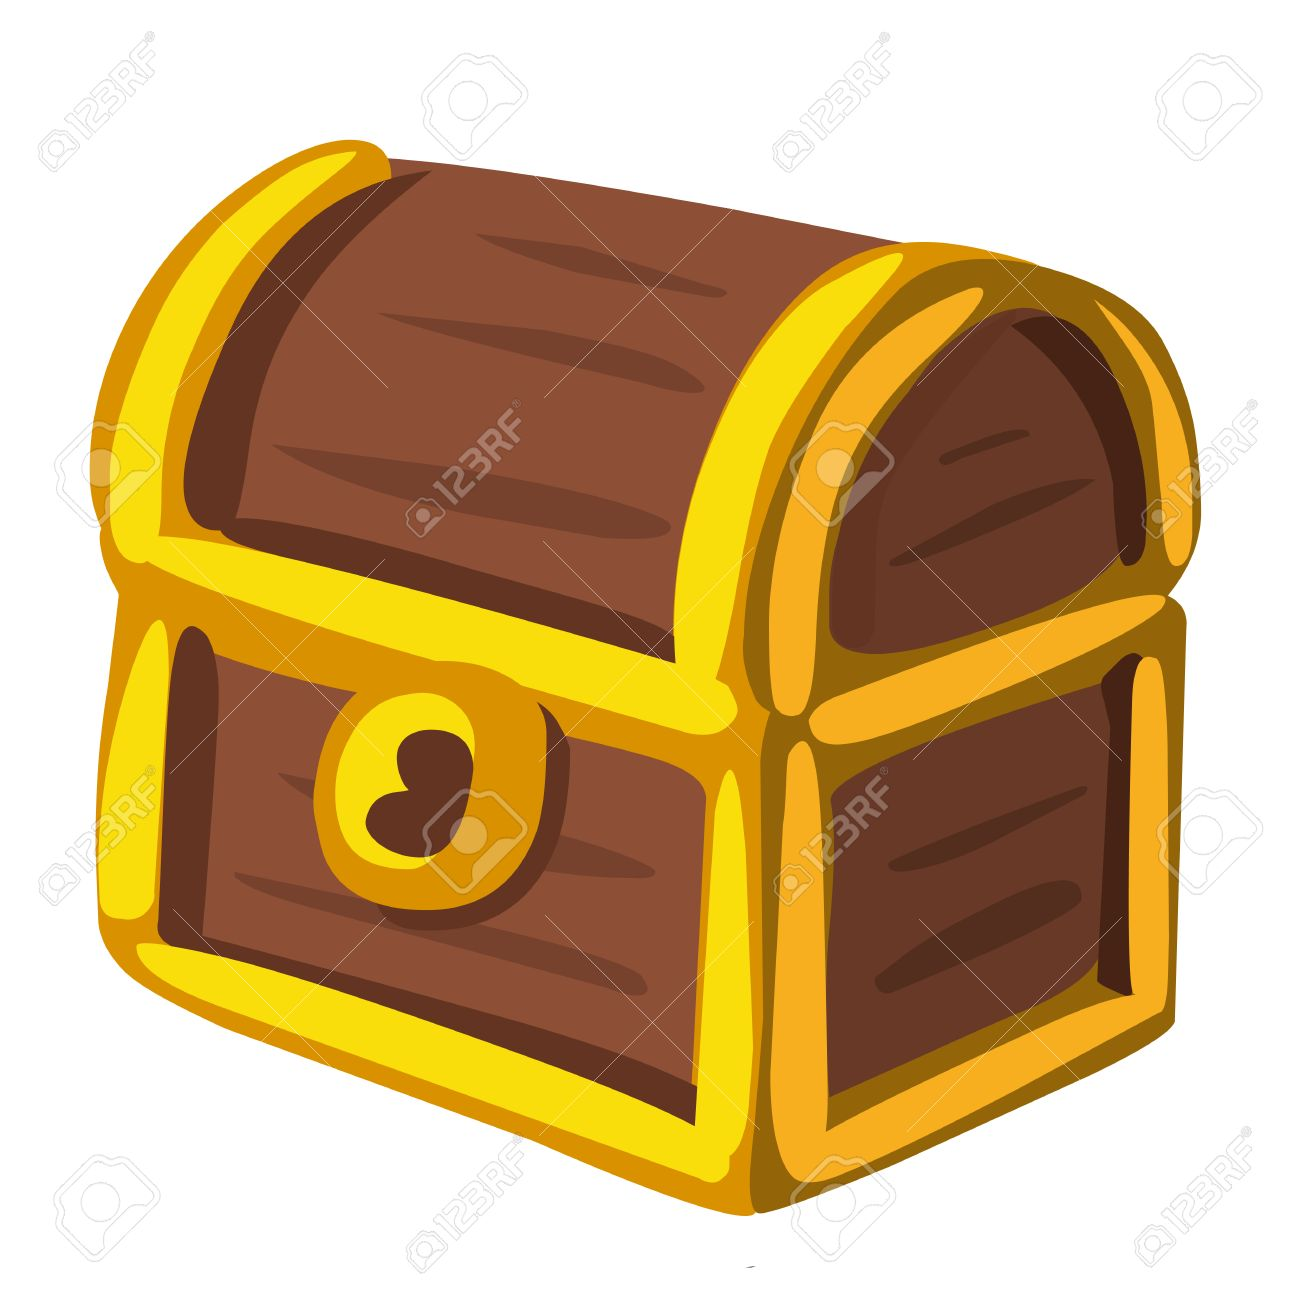 treasure chest isolated illustration on white background royalty rh 123rf com free clipart treasure chest free clipart treasure chest